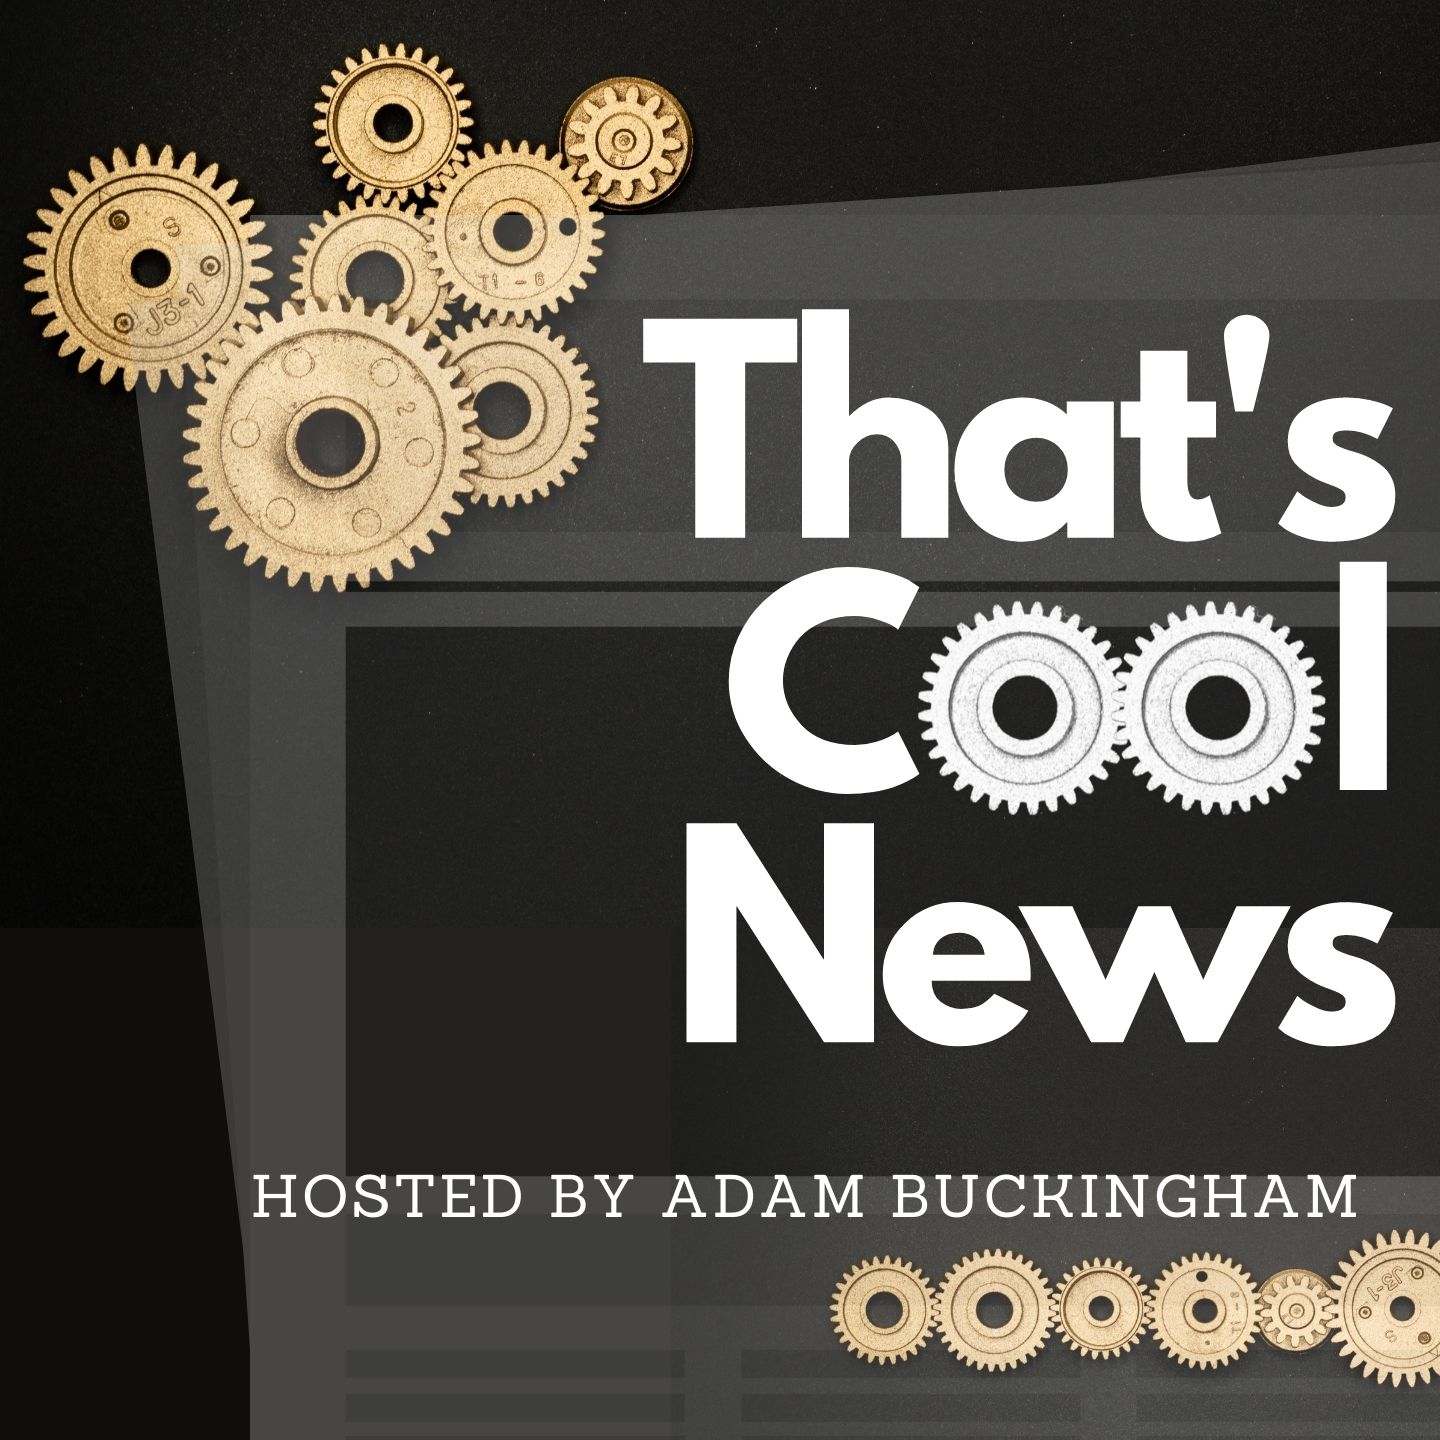 That's Cool News Podcast logo